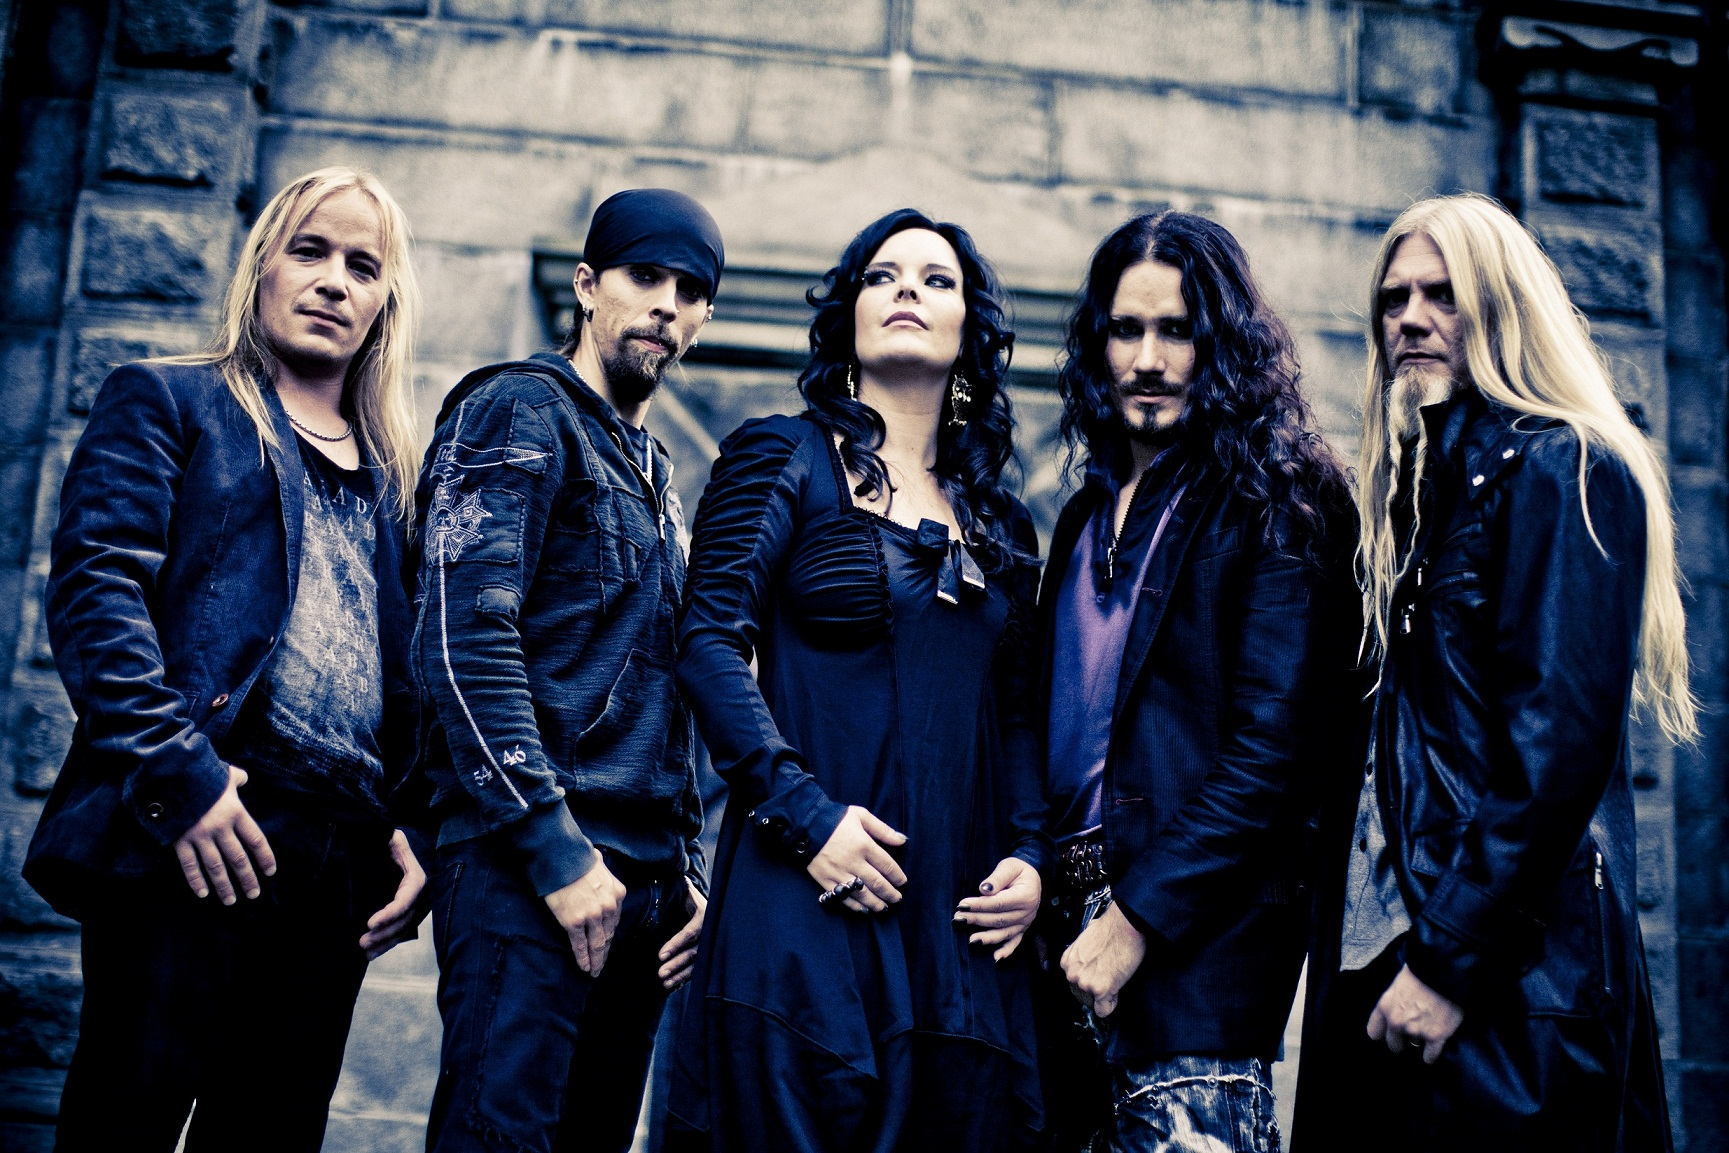 NIGHTWISH Announce Imaginaerum Tour